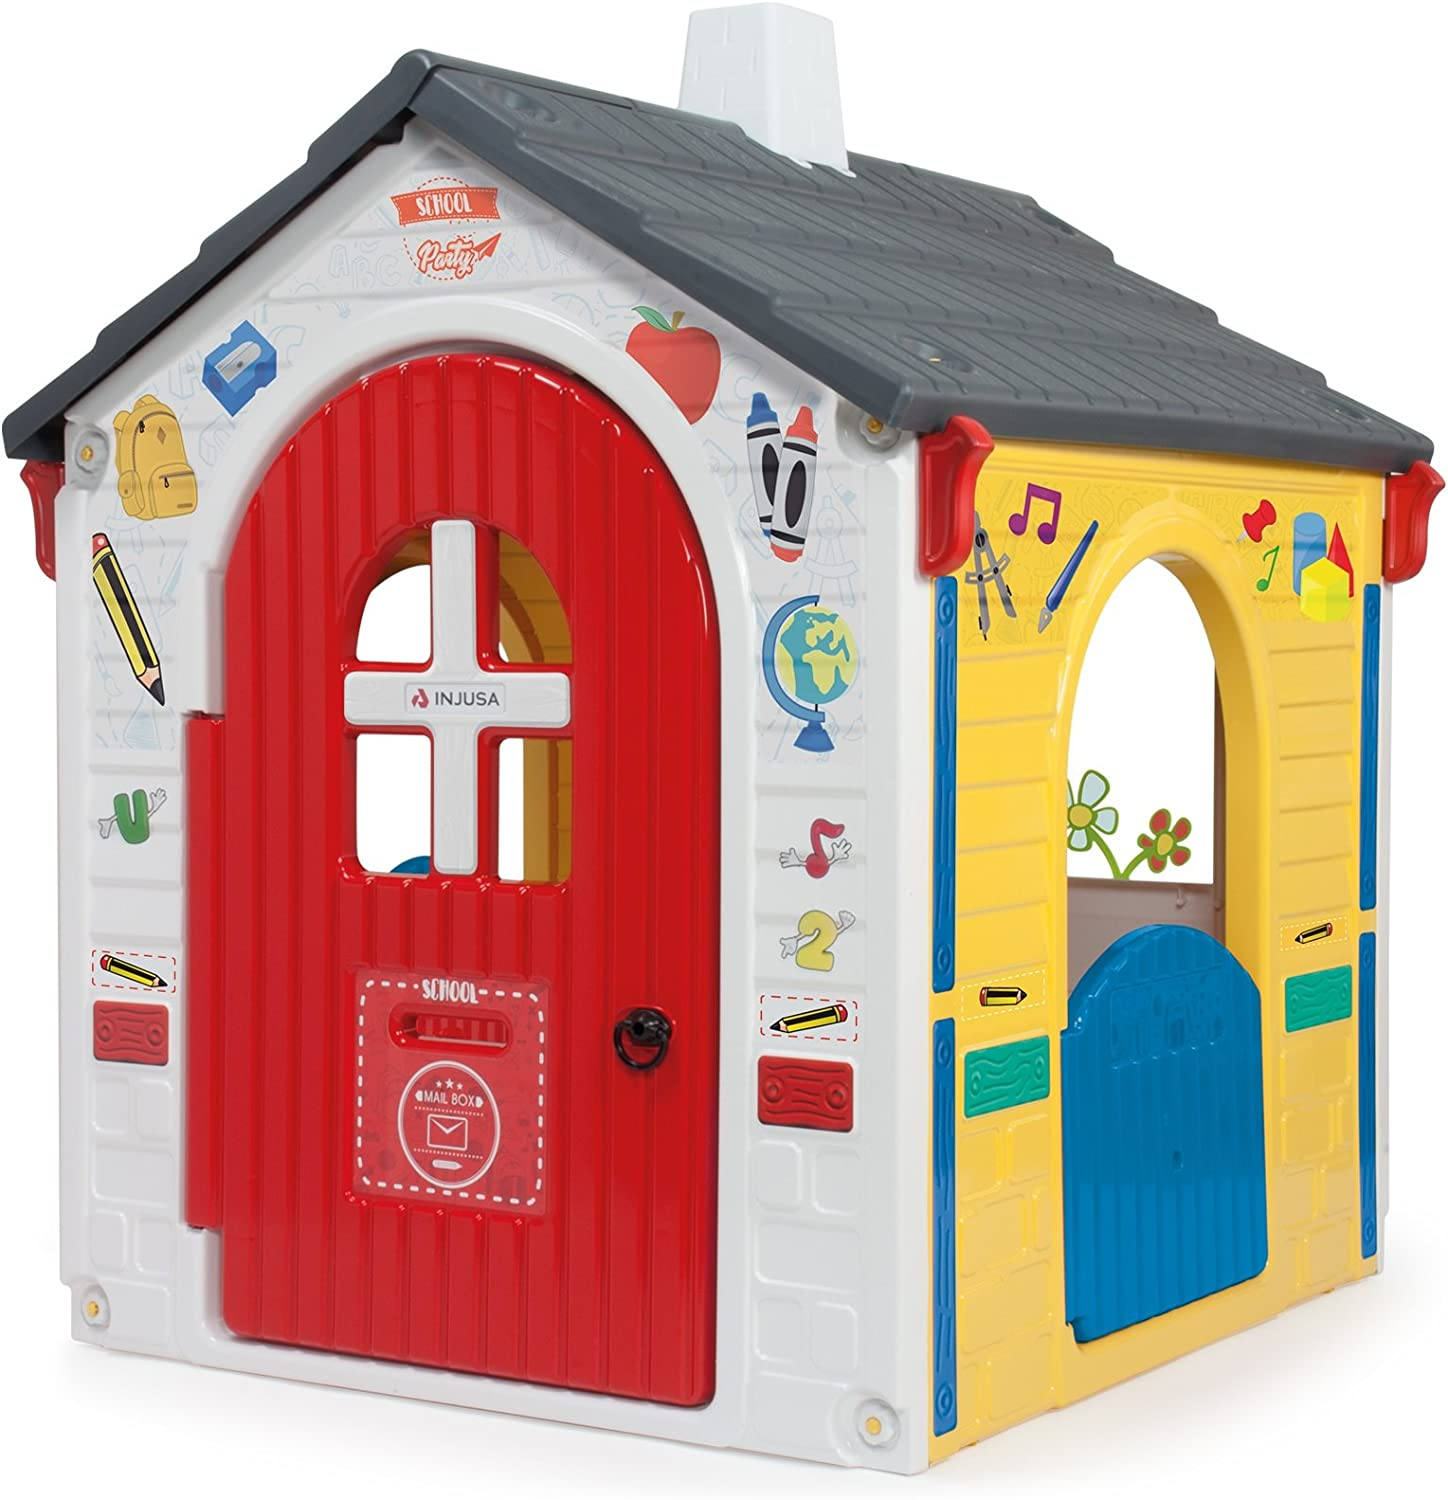 INJUSA-20334 Casa Country E-Learning, Multicolor, 21 x 10 x 5 cm (20334)